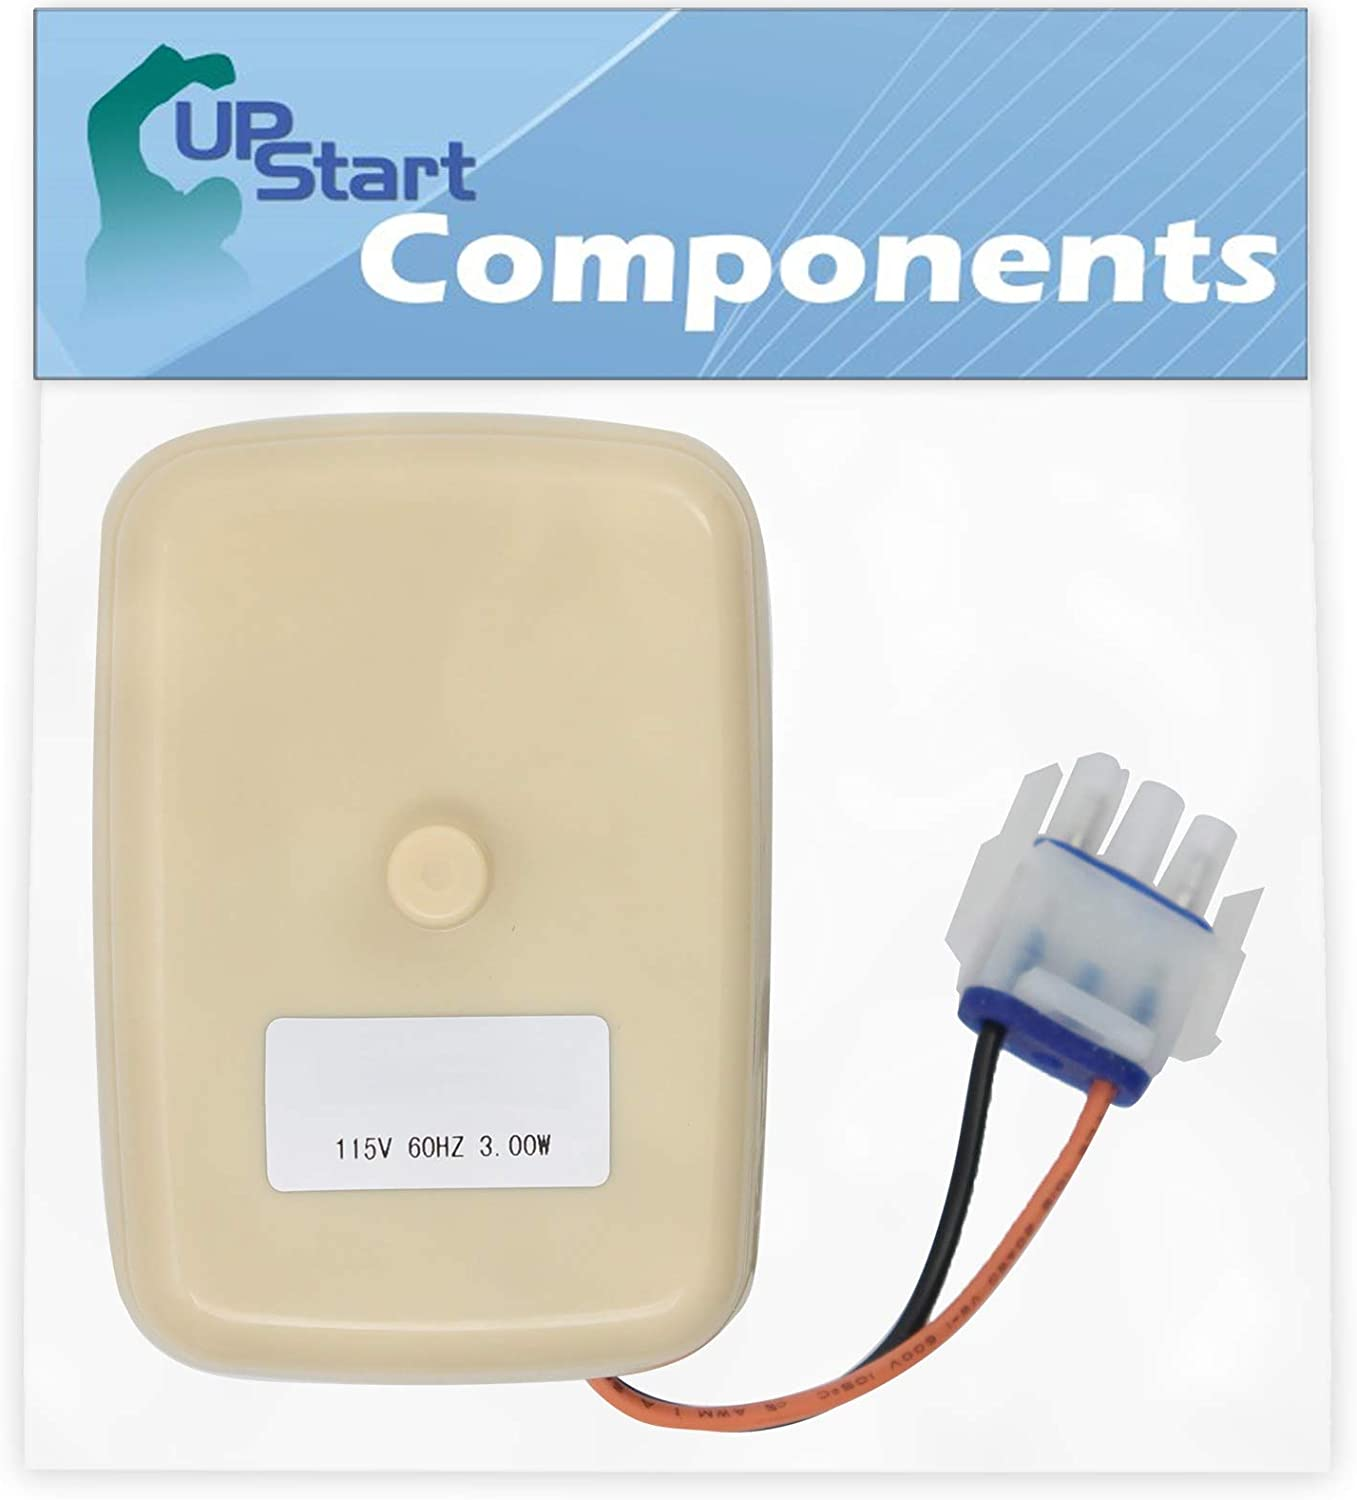 WR60X10141 Evaporator Fan Motor Replacement for General Electric GTH17DBC2RWW Refrigerator UpStart Components Brand Compatible with WR60X23584 Fan Motor